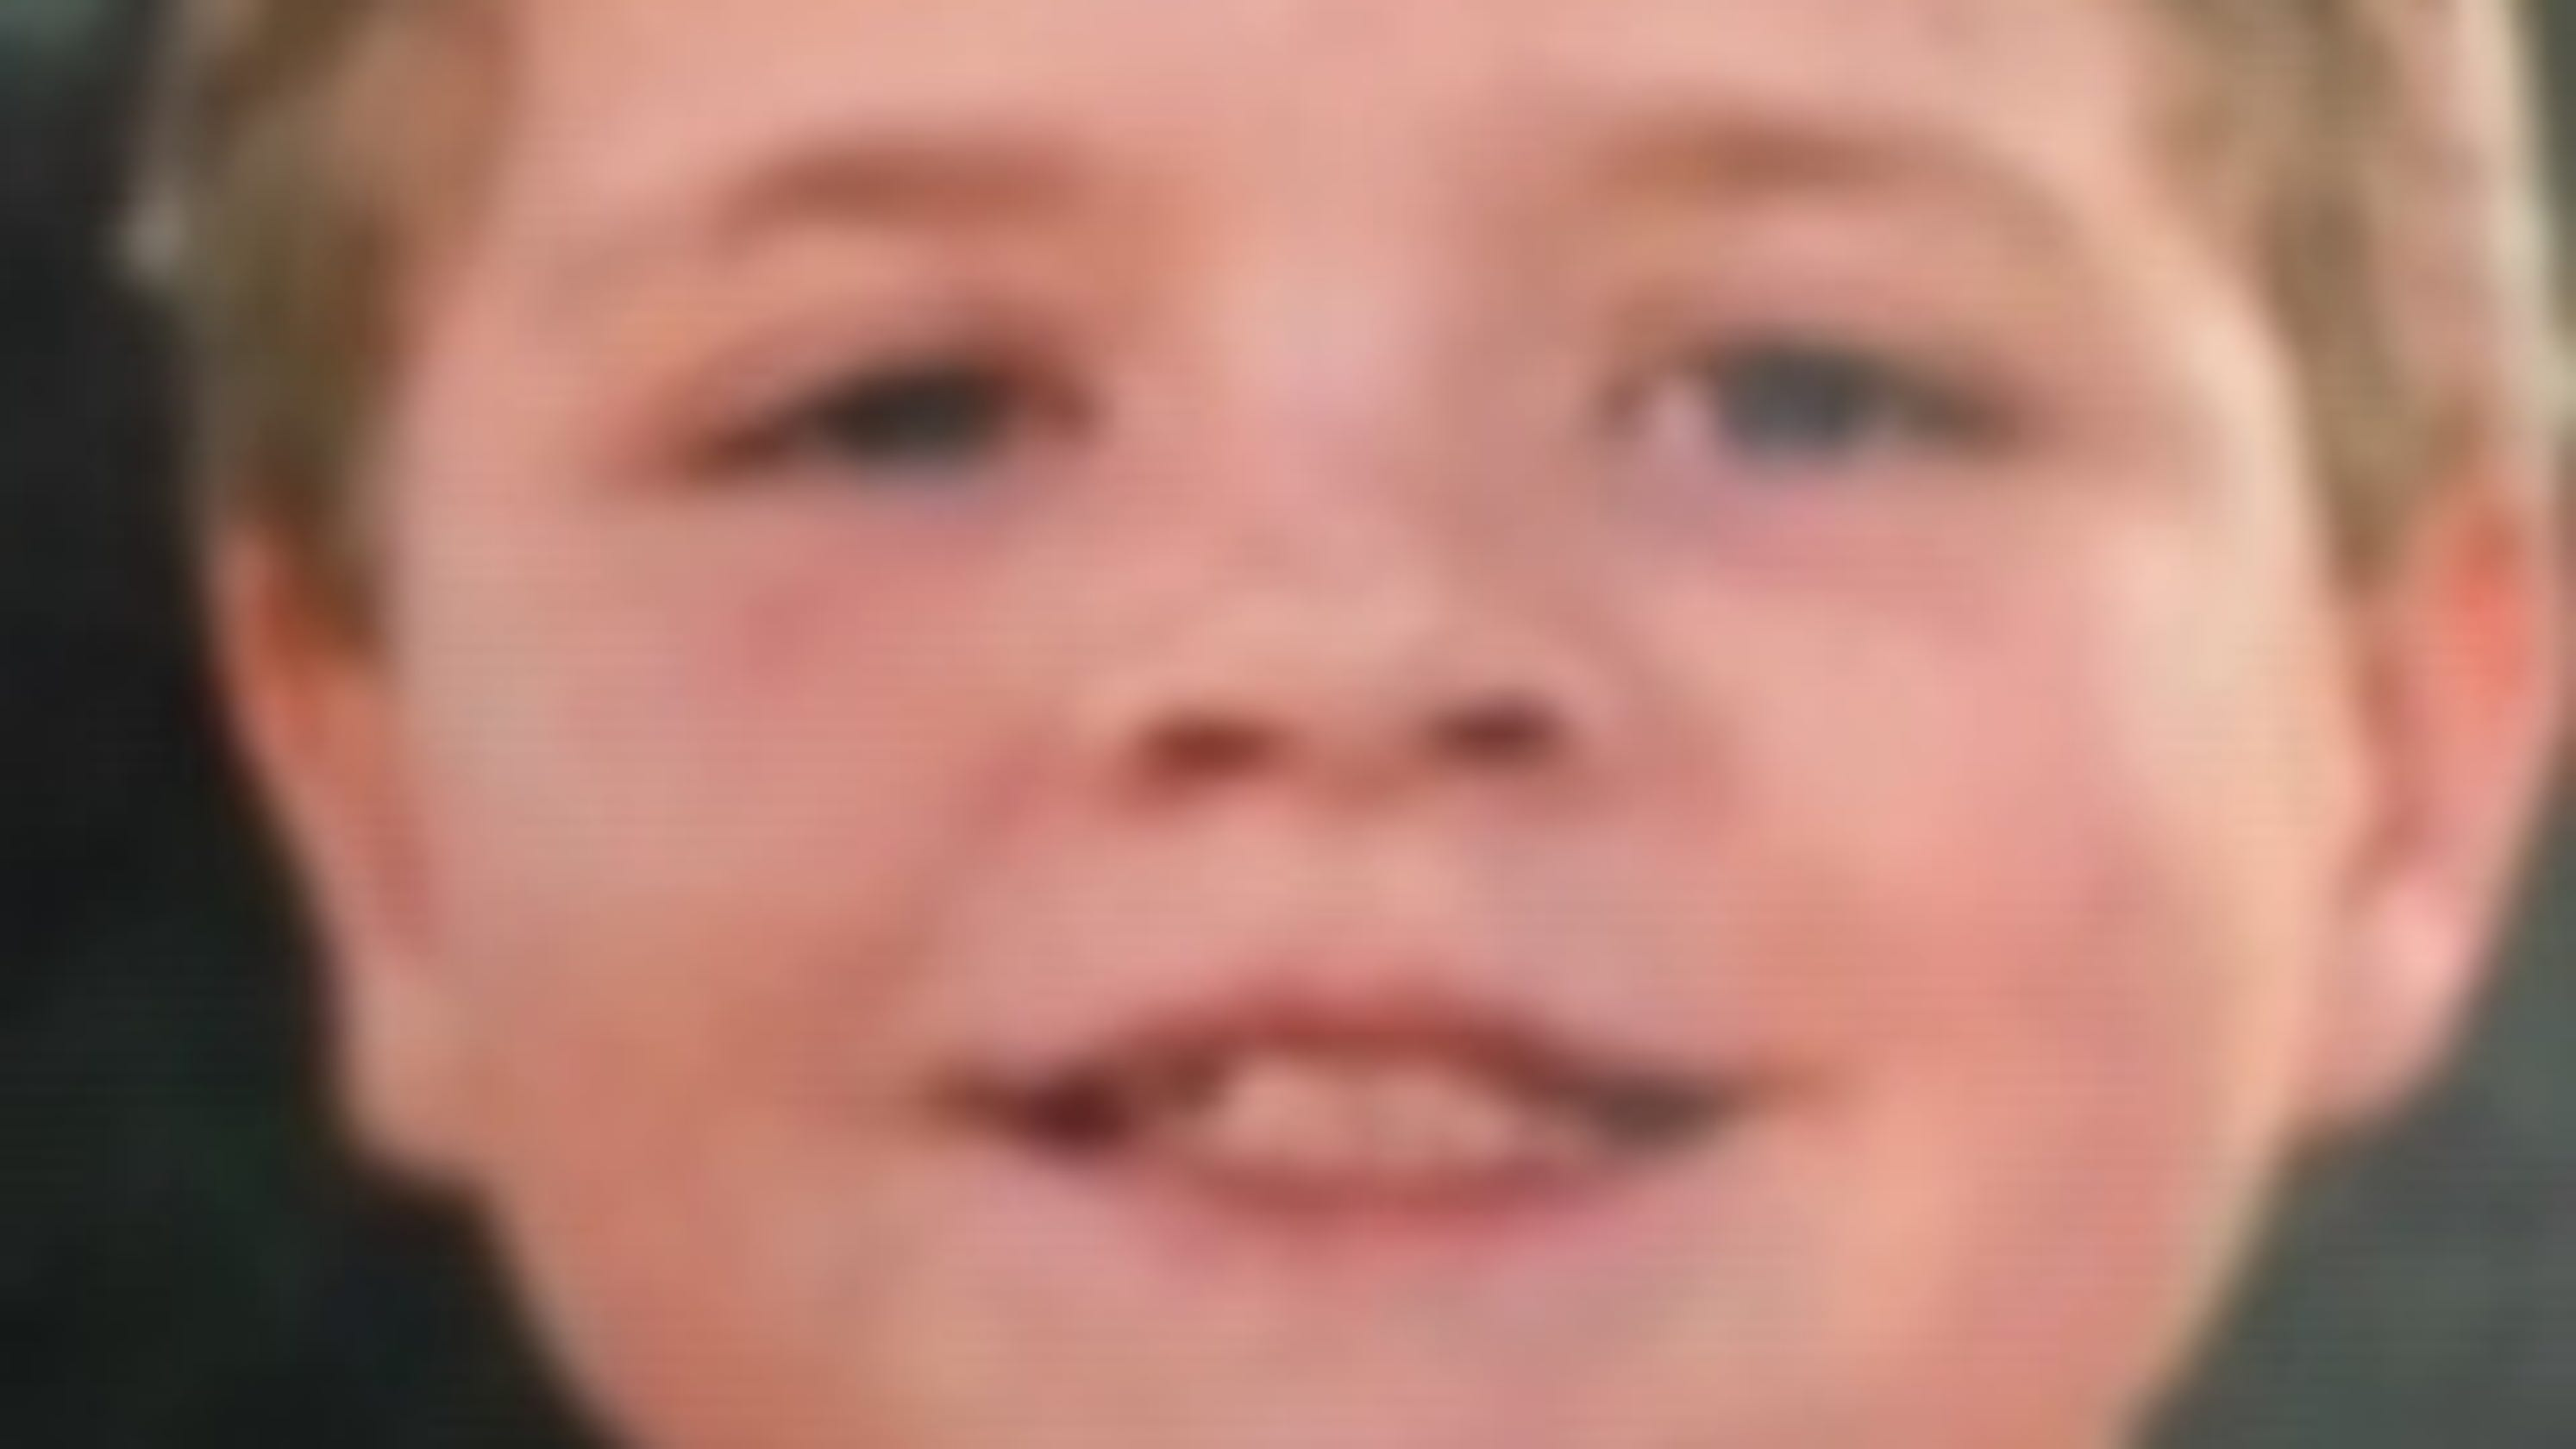 Found safe: 9-year-old boy had been missing from YMCA Camp Greenville